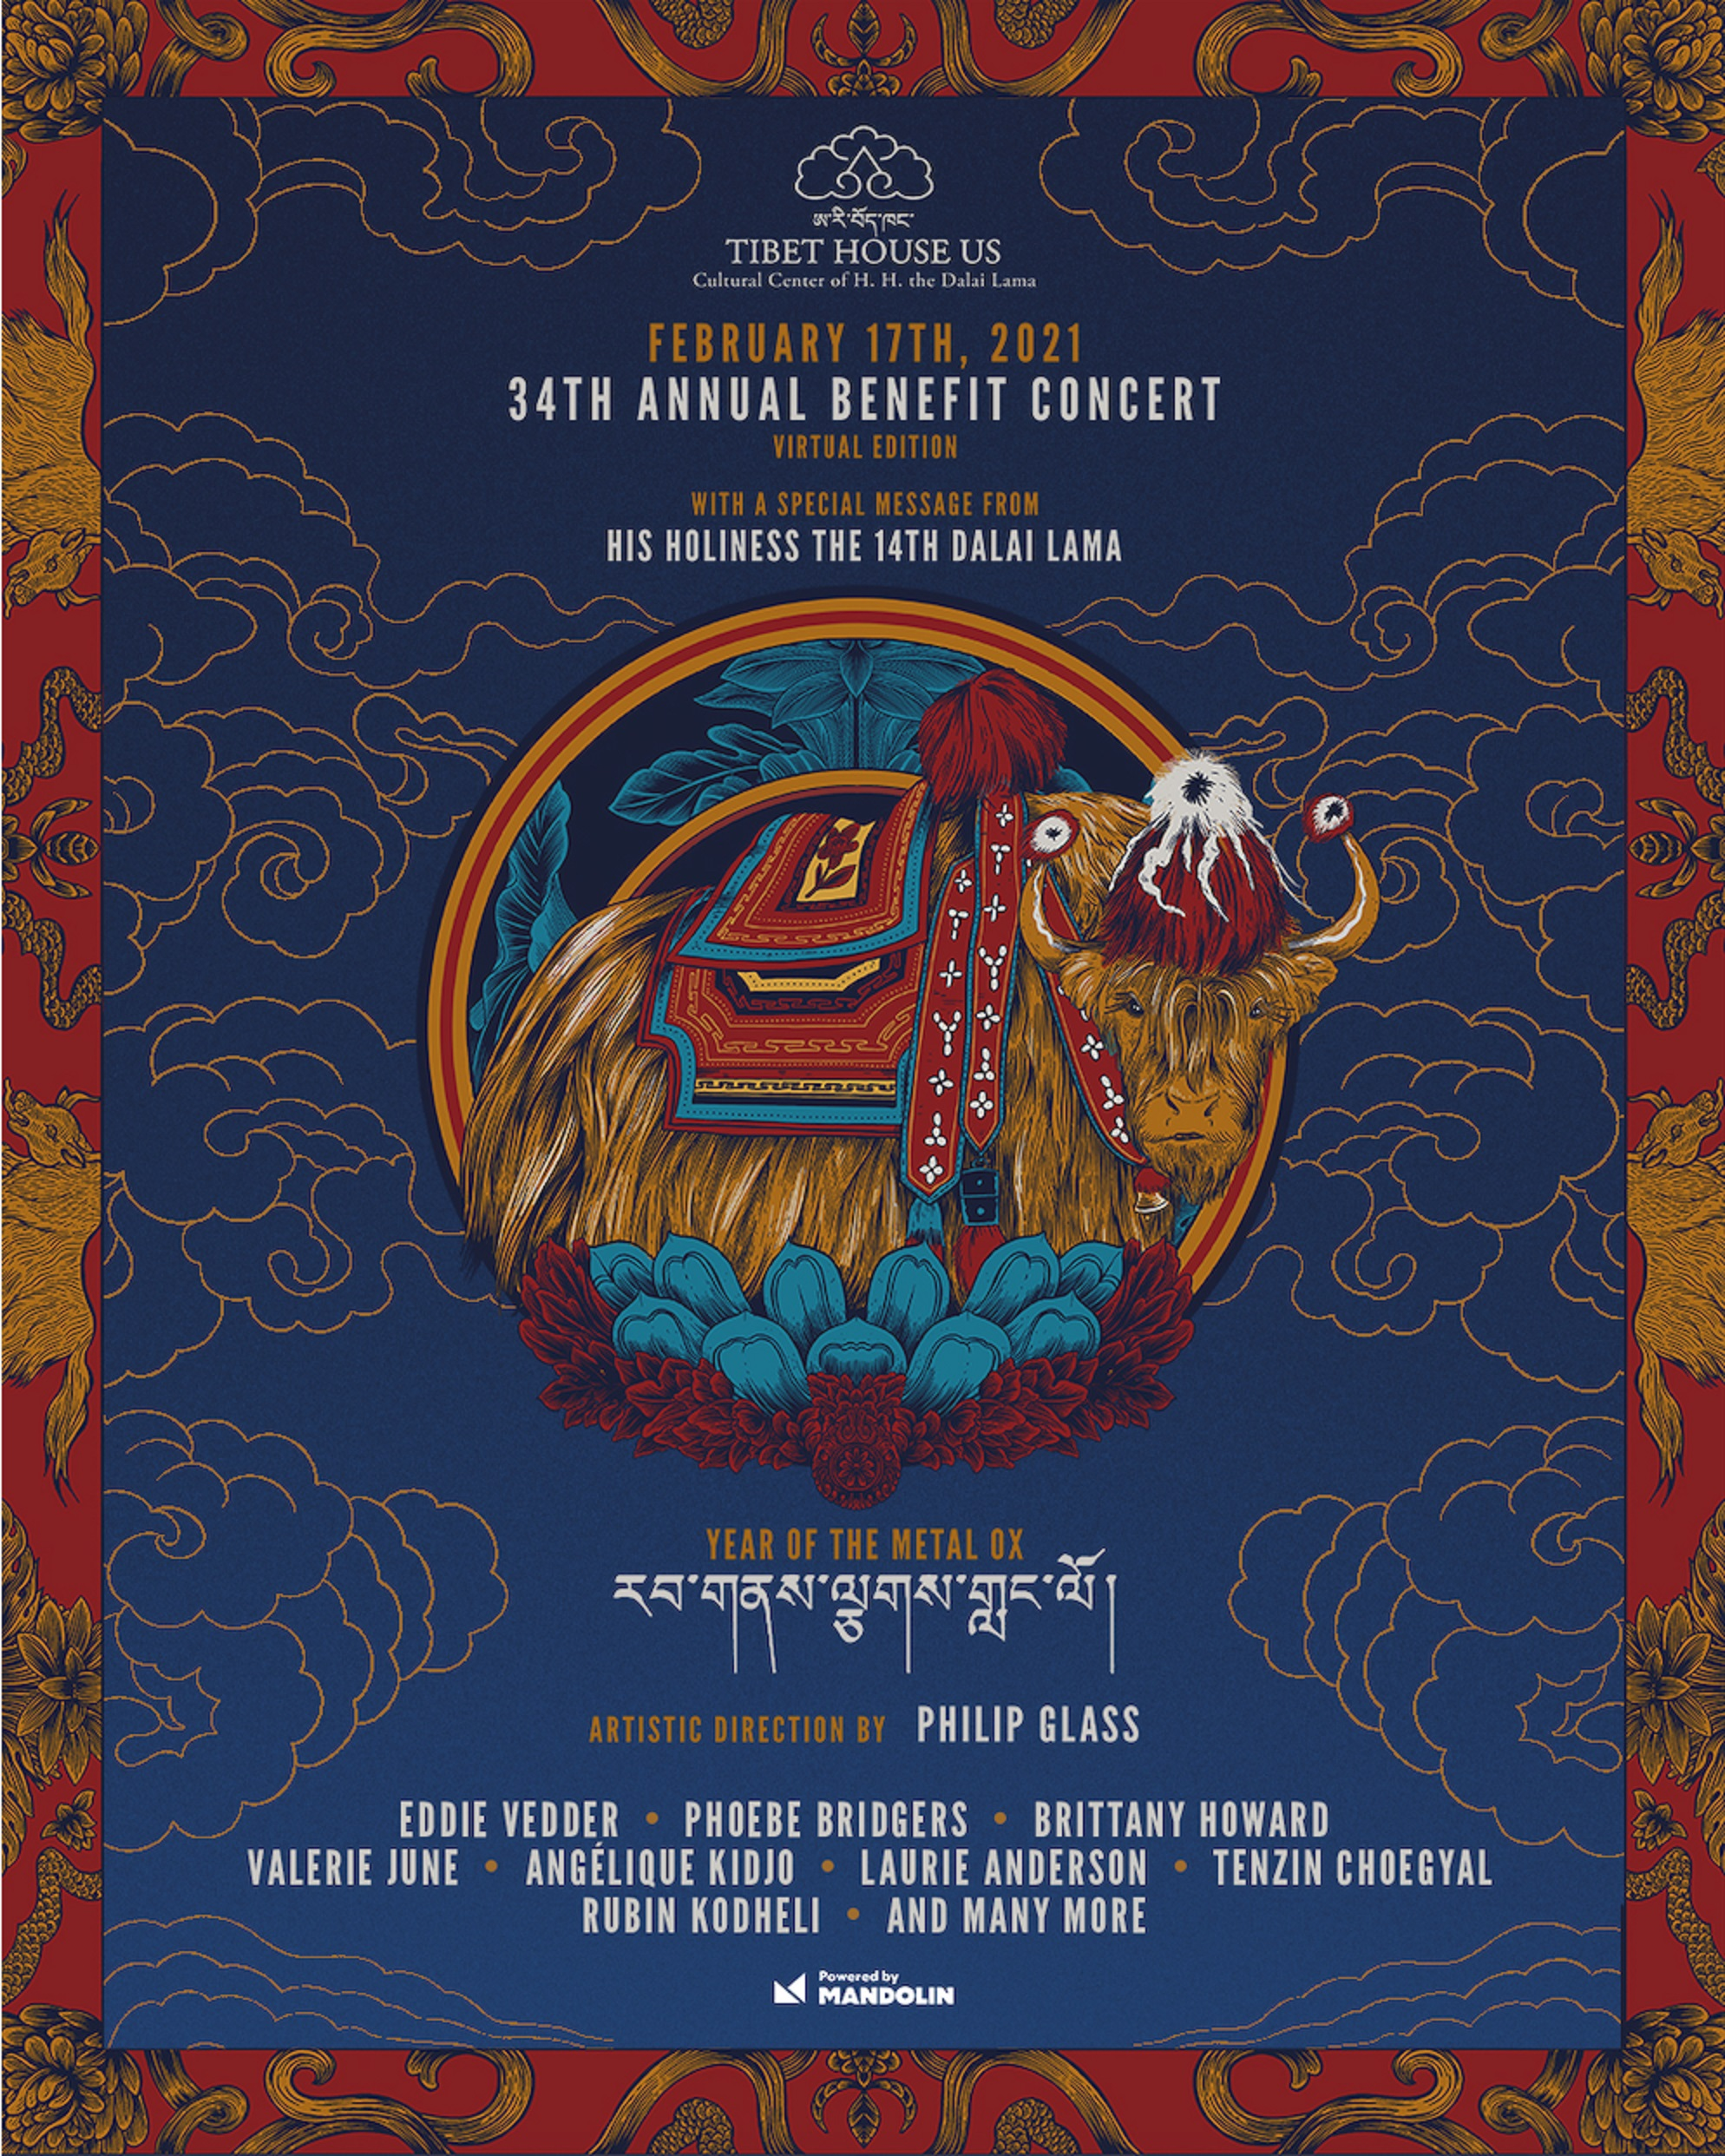 The 34th Annual Tibet House US Benefit Concert Virtual Edition